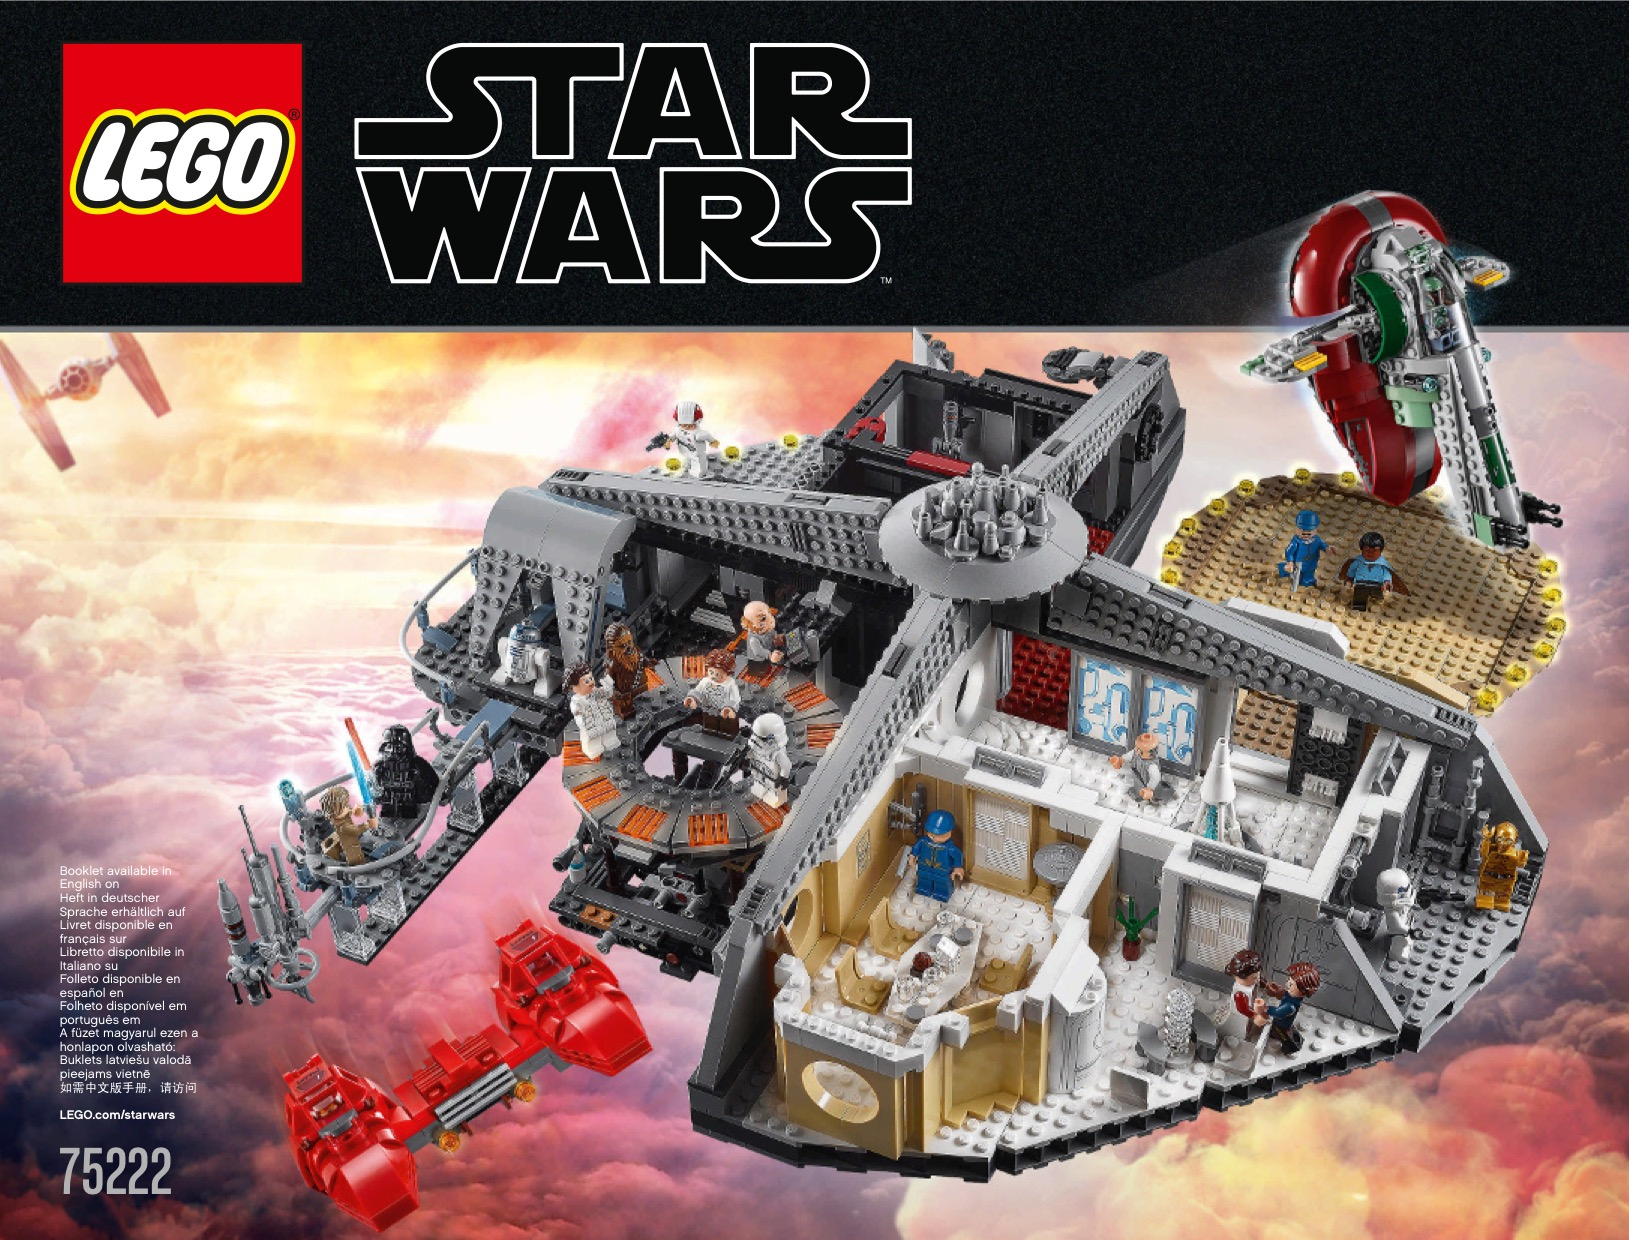 Lego Star Wars Instructions, Childrens Toys with Lego 75213 Instructions